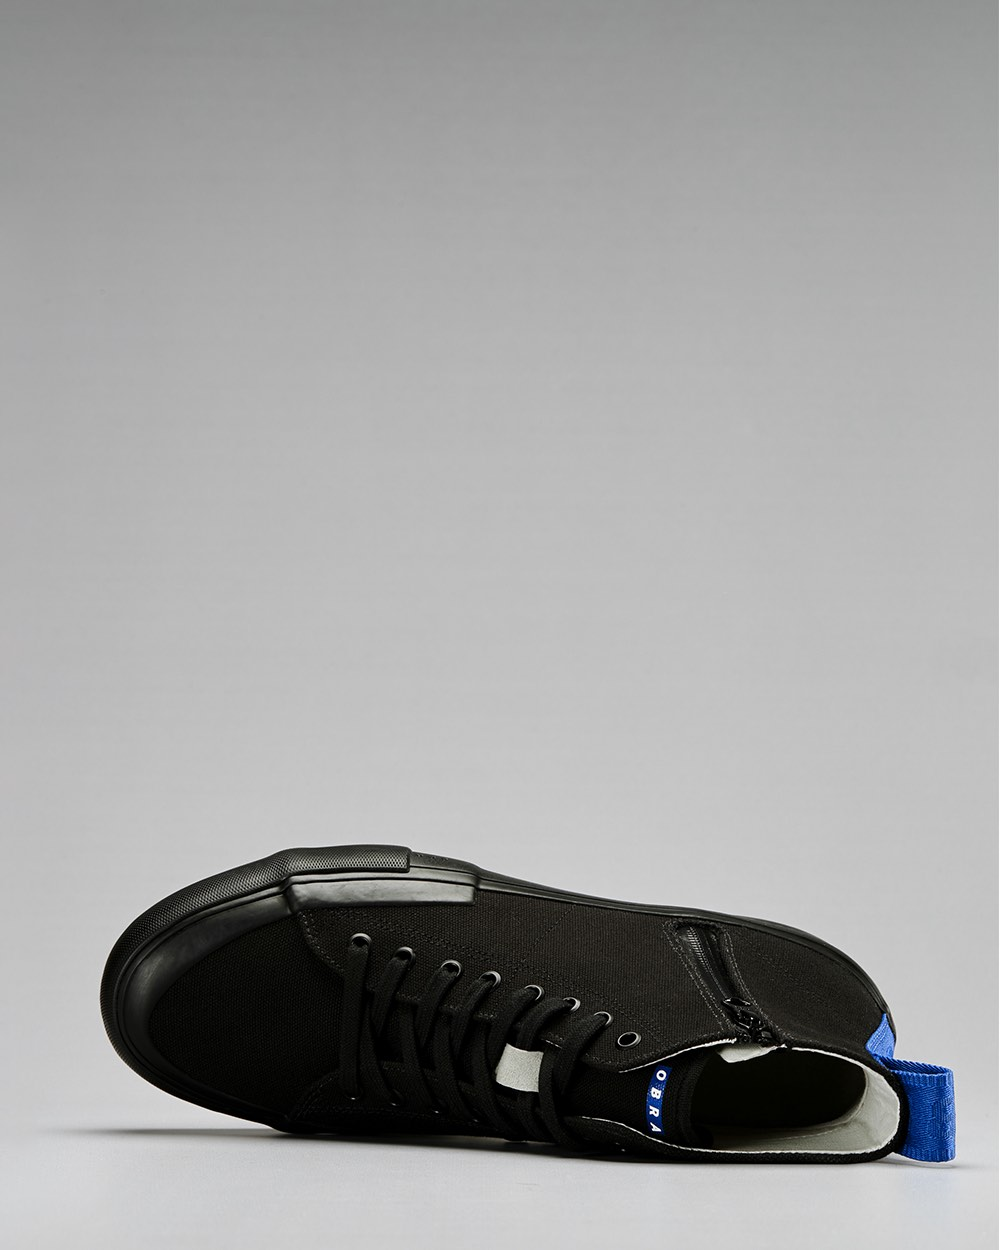 TERRA CANVAS HIGH WRAP TOE<br />Black/Black/OBRA Blue